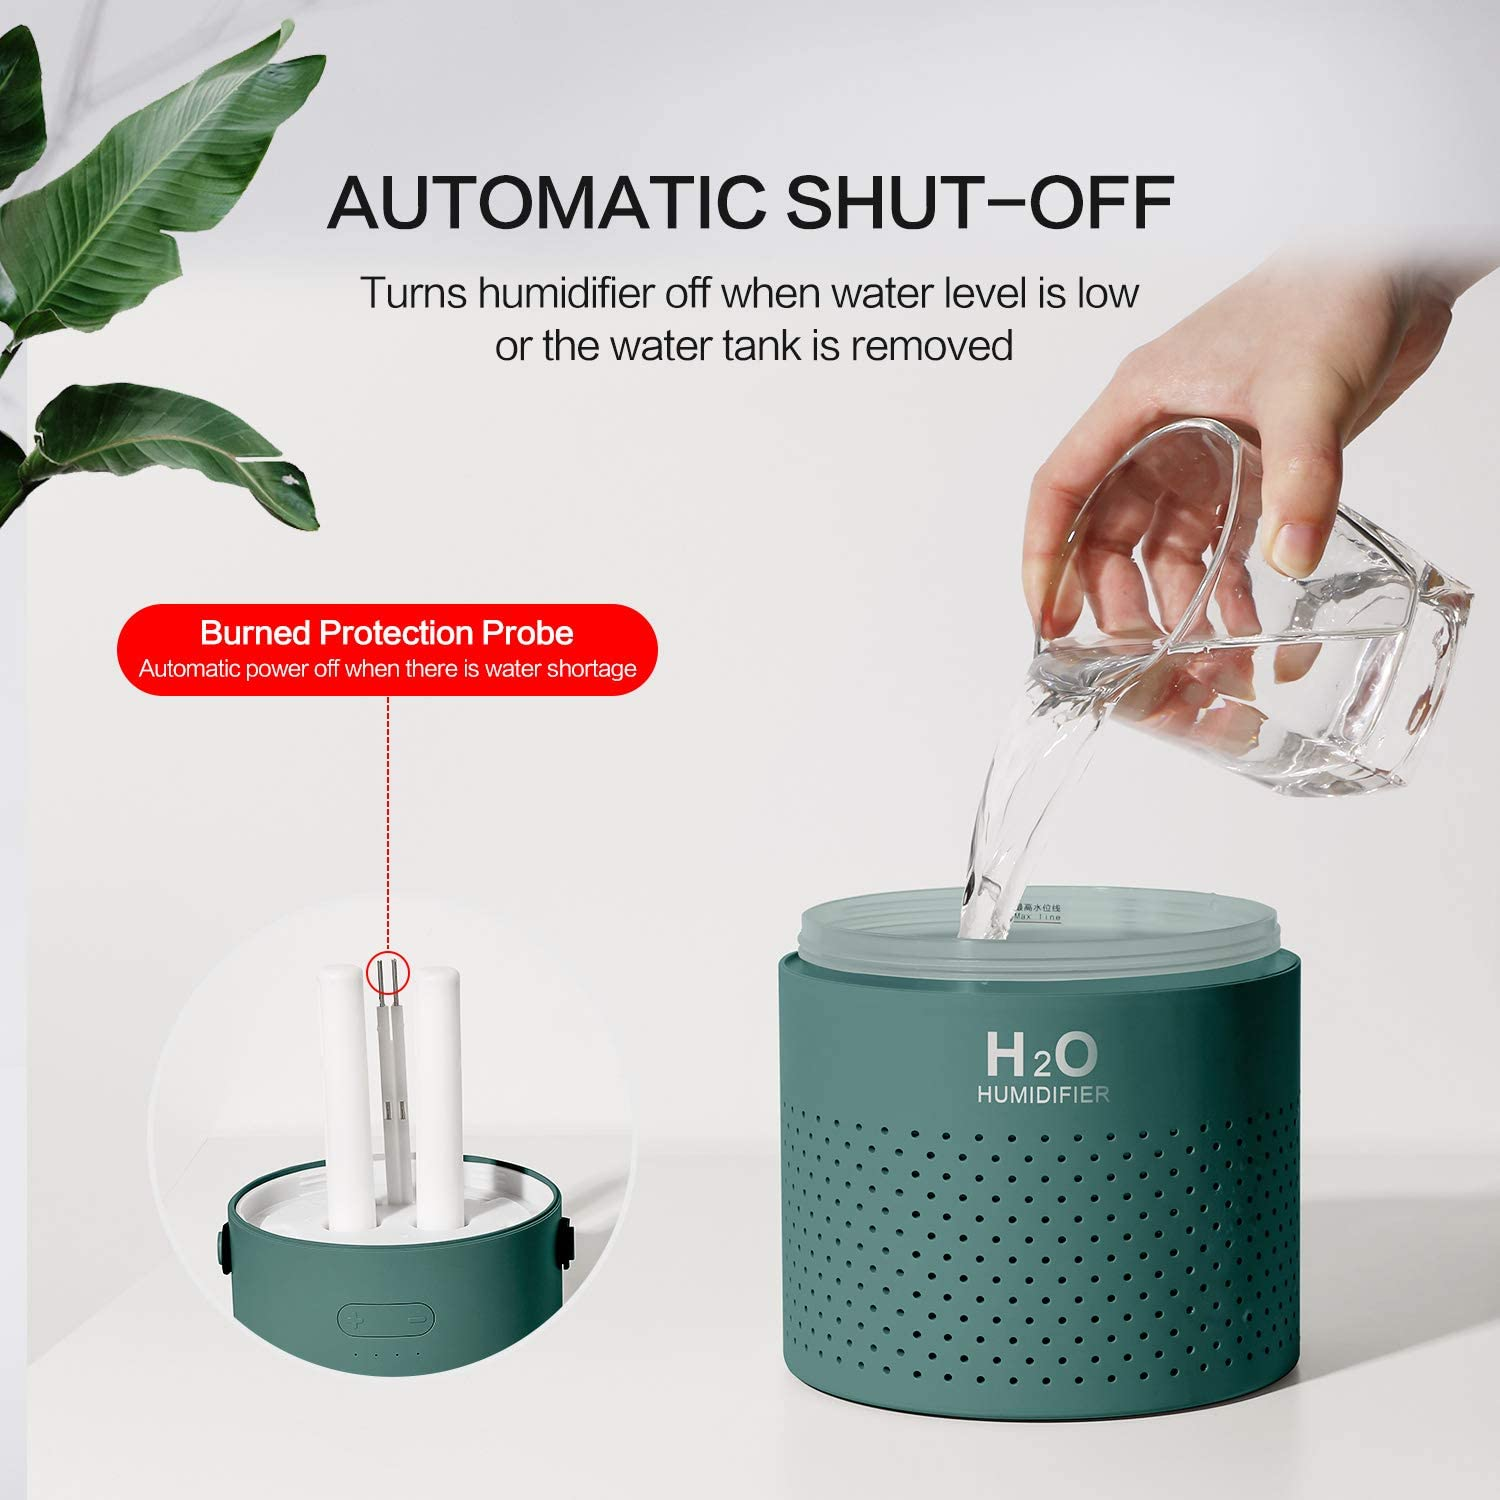 SmartDevil Humidifier,1.1L Cool Mist Humidifier with 4000mAh Battery Operated umidifiers for Home Bedroom Office Travel Double-Head Spray,Colorful Night Light Function,essential oil forbidden-White